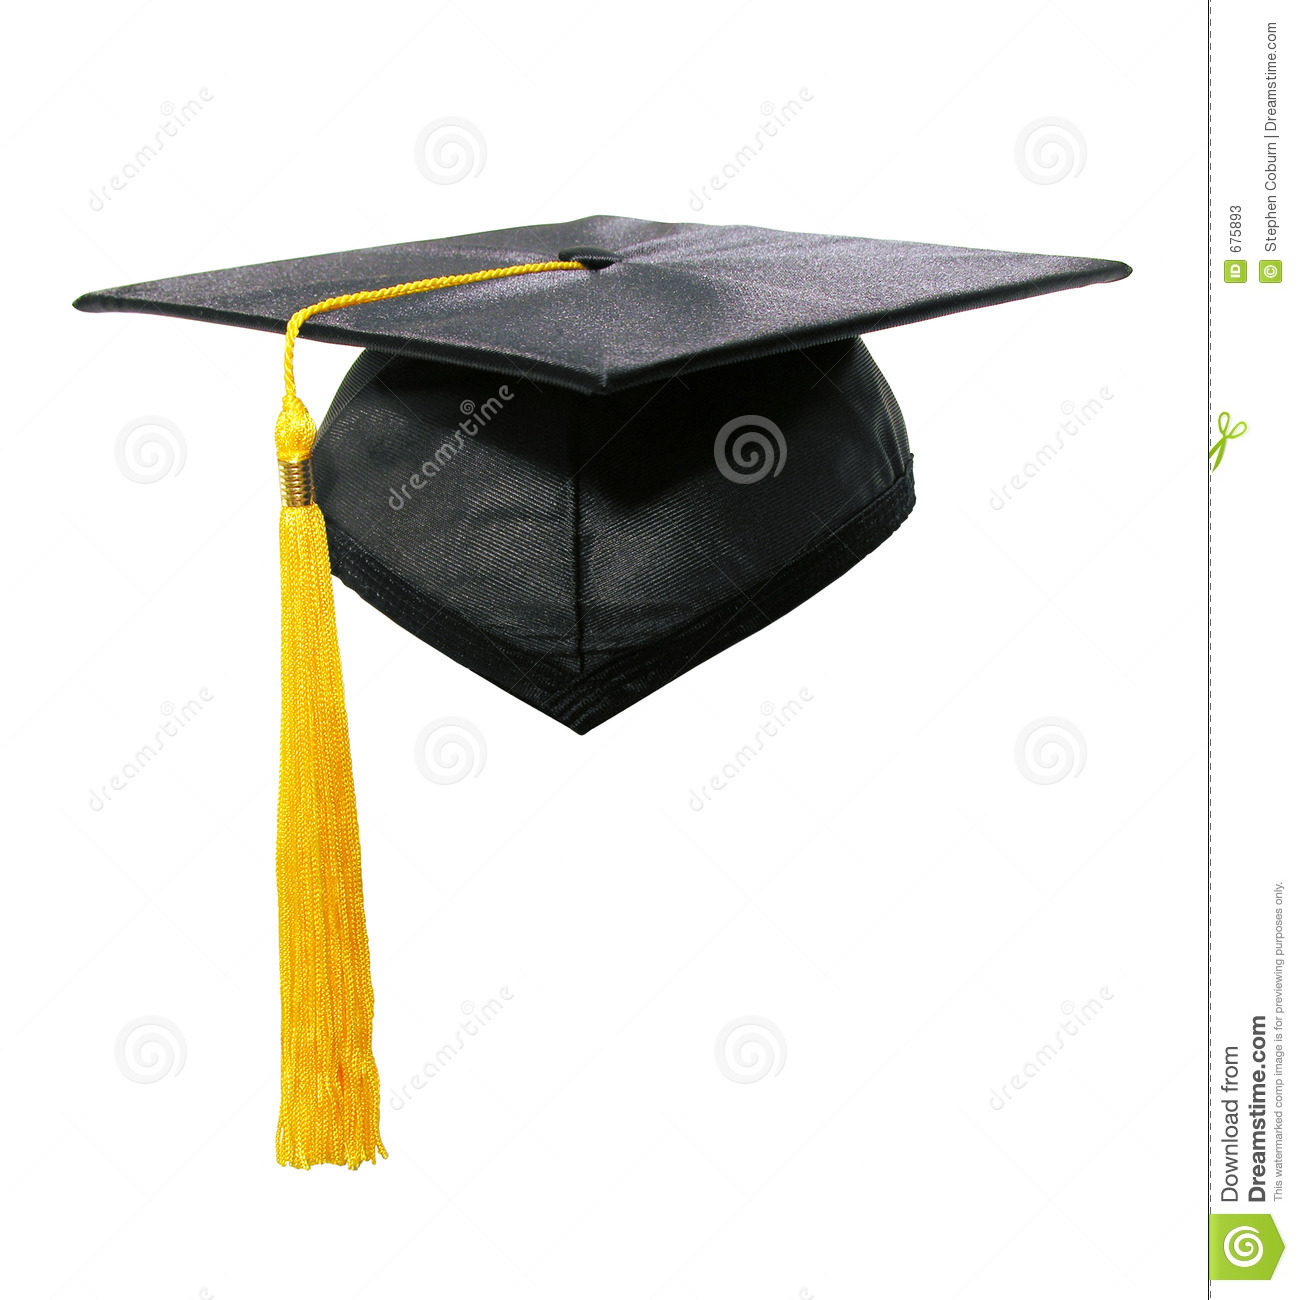 graduation cap and tassle stock image image of ceremony 675893